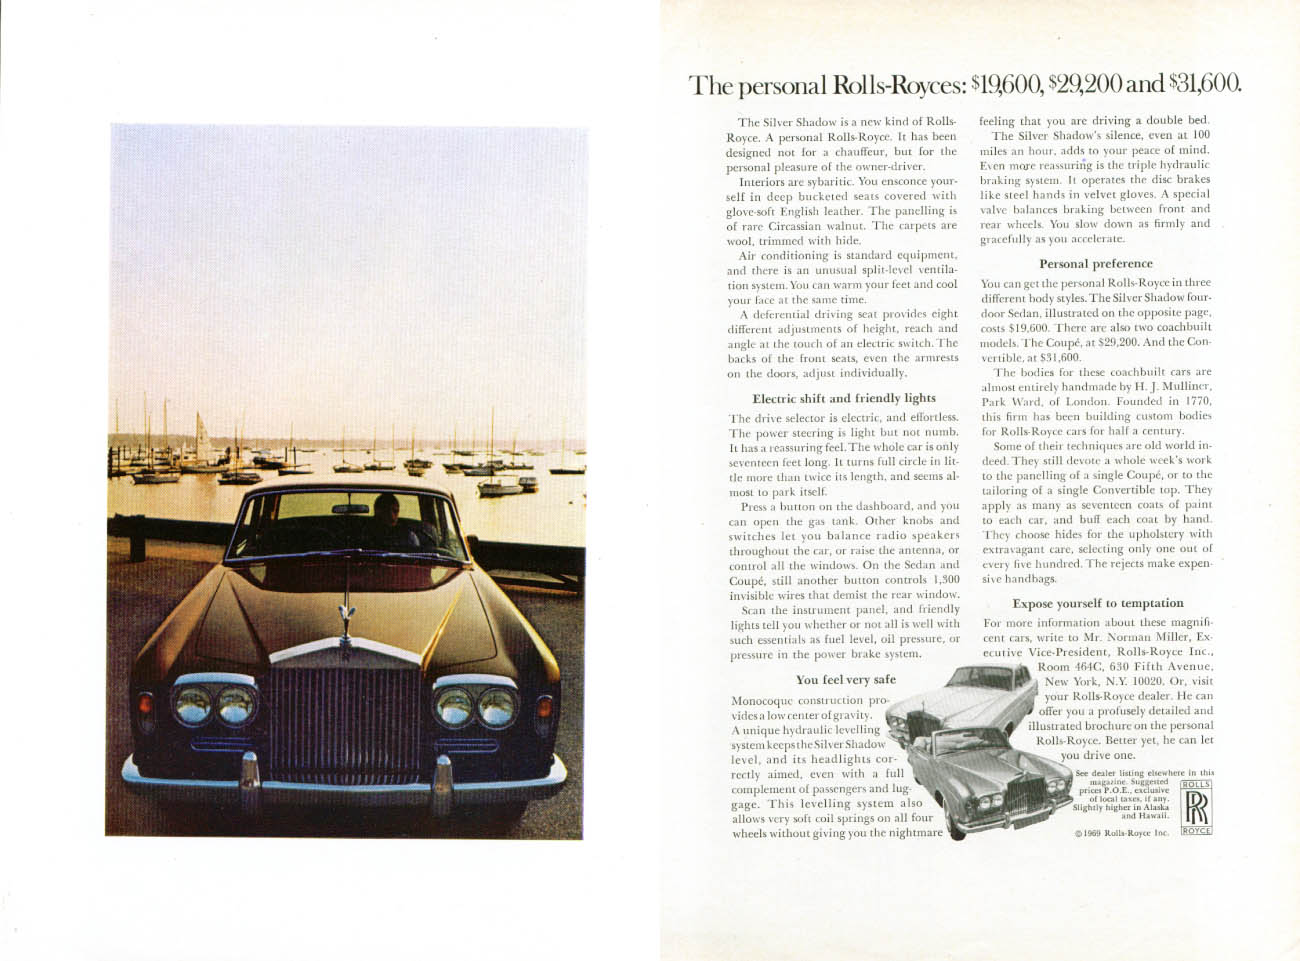 Image for Personal Rolls-Royces $19,600 $29,200 $31,600 ad 1969 2 page